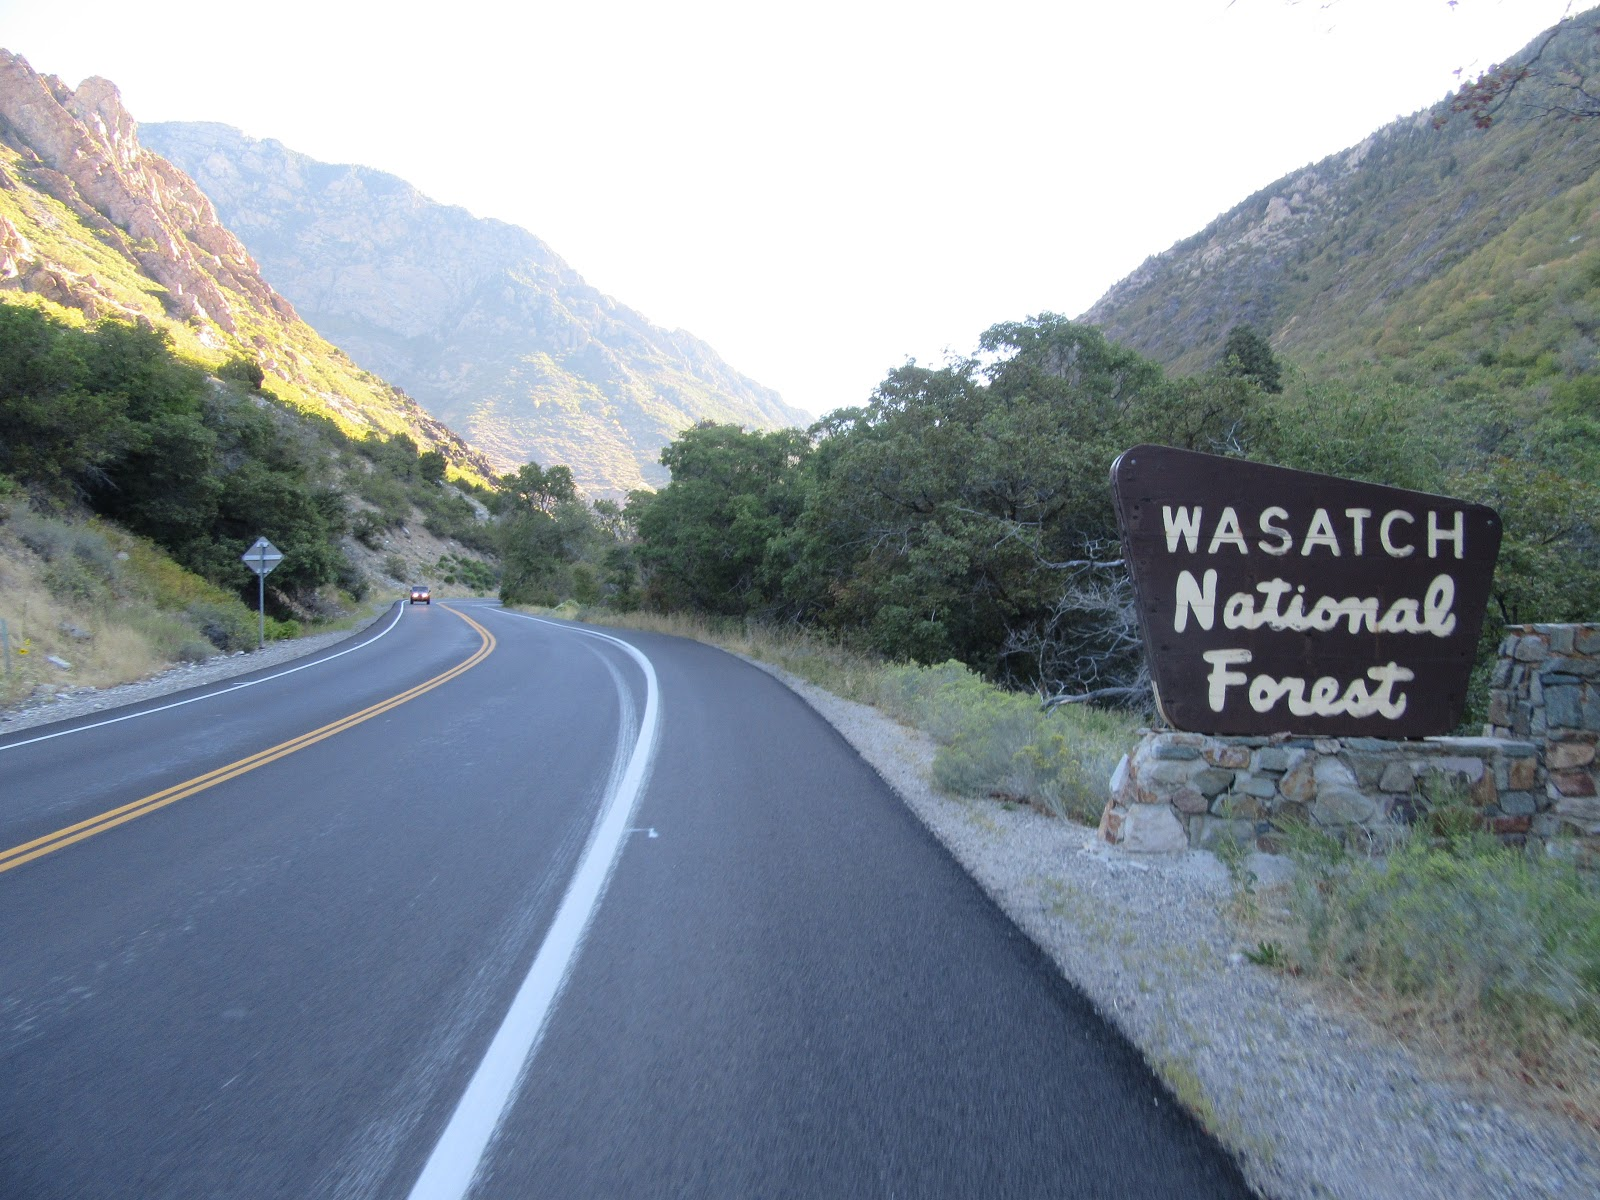 Riding Big Cottonwood Canyon by bike - Wasatch National Forest sign.